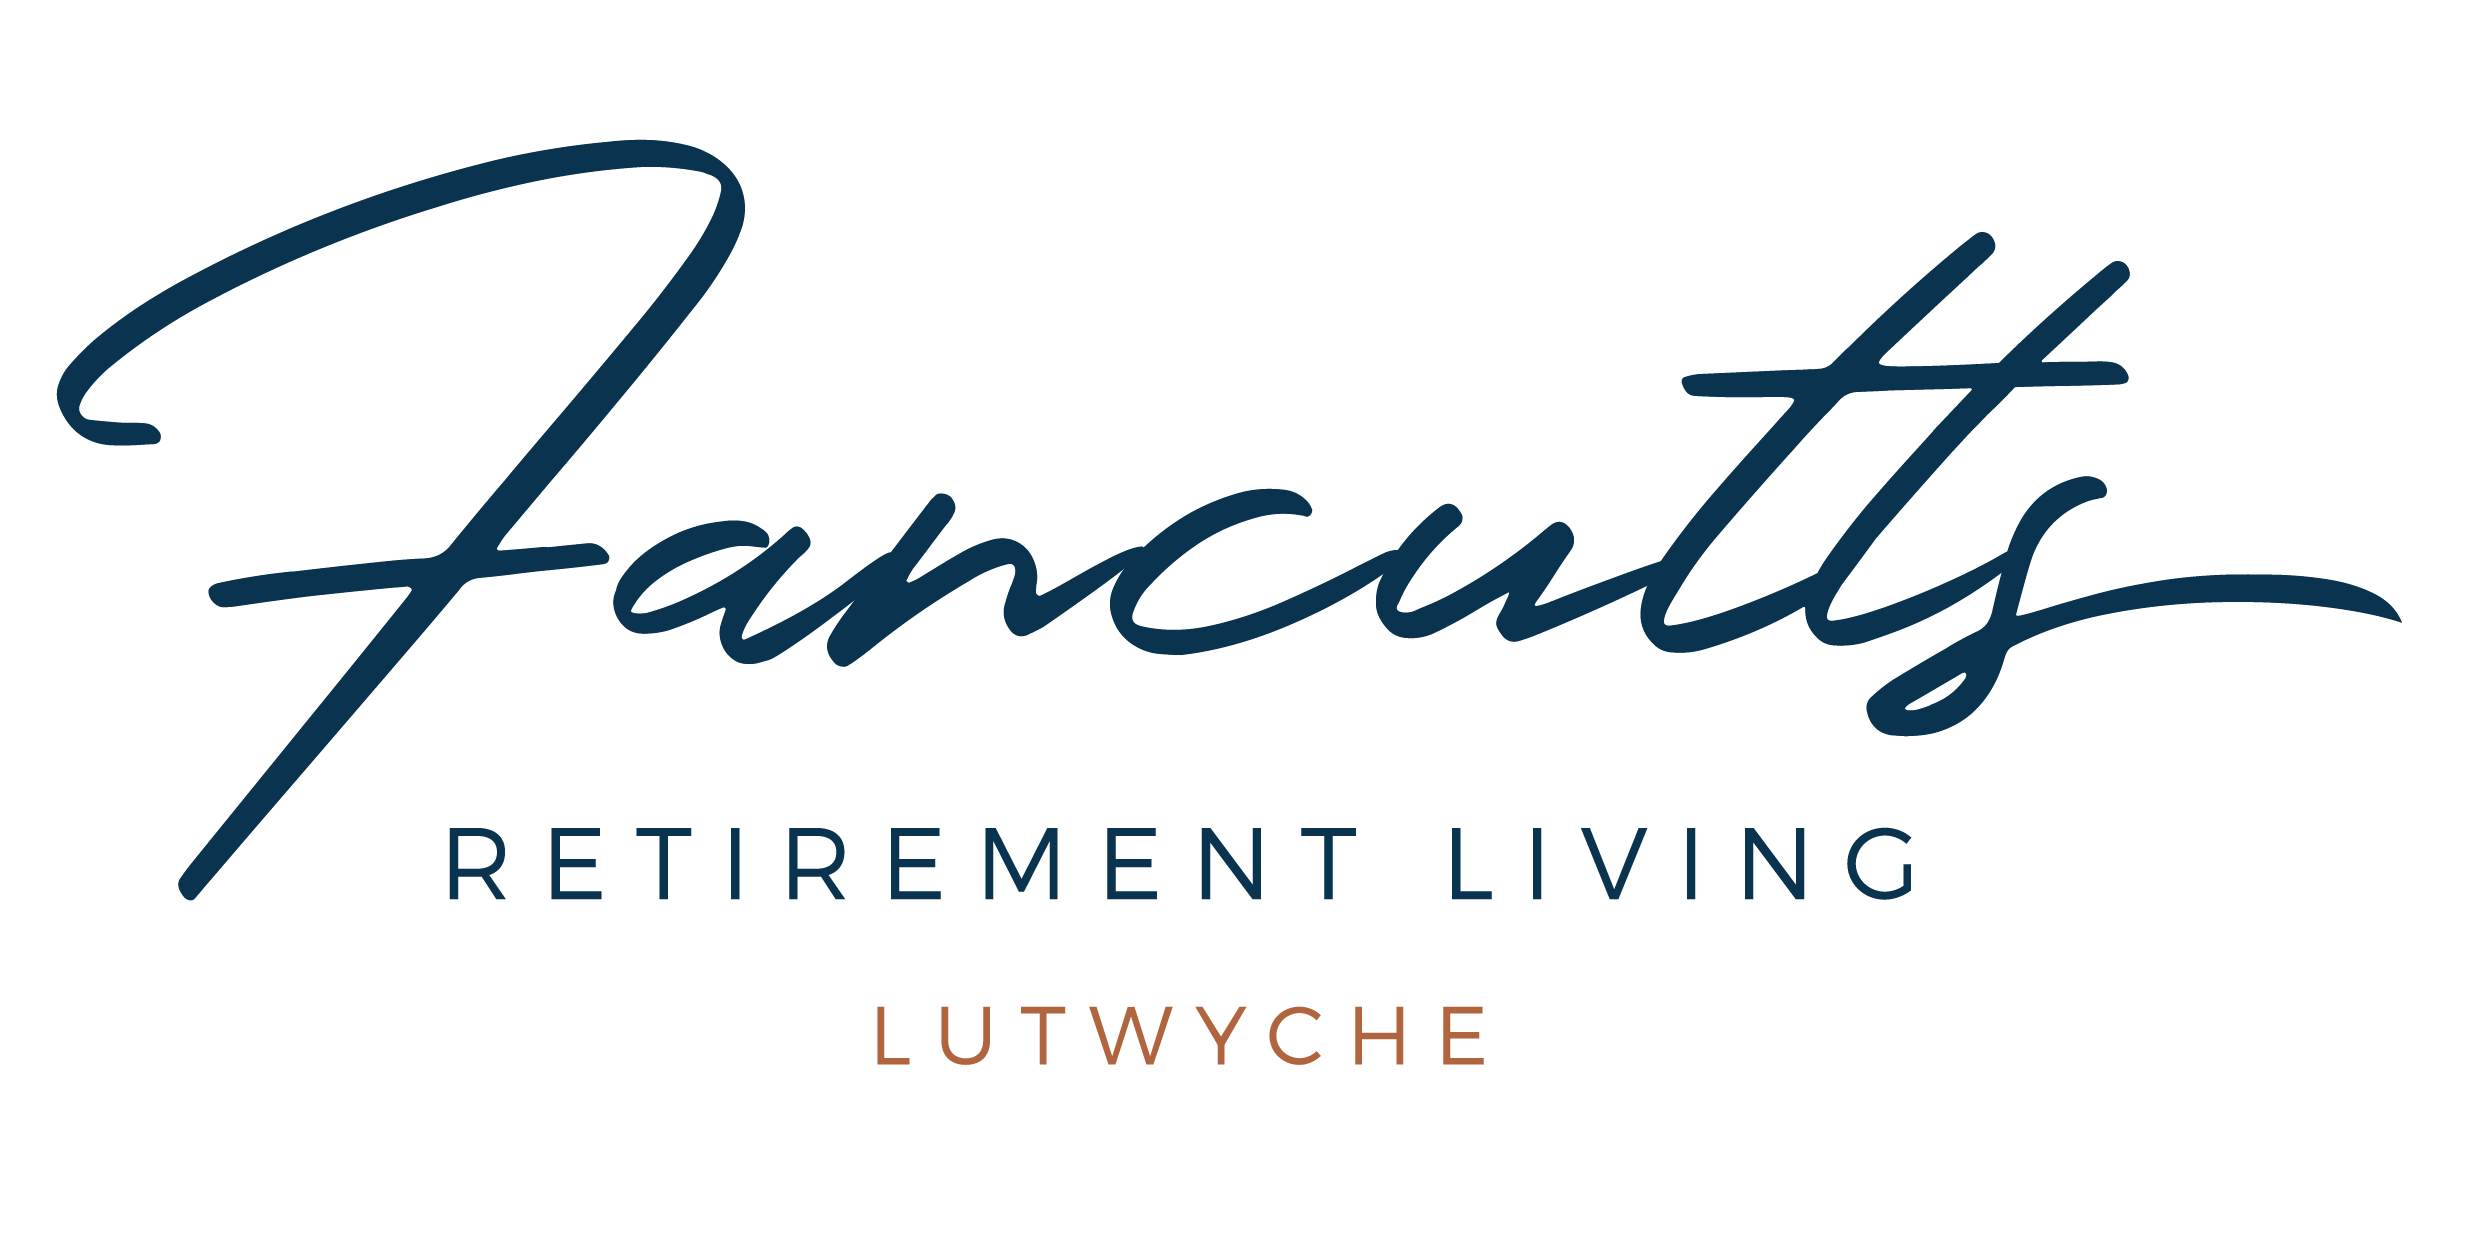 Fancutts Retirement Living